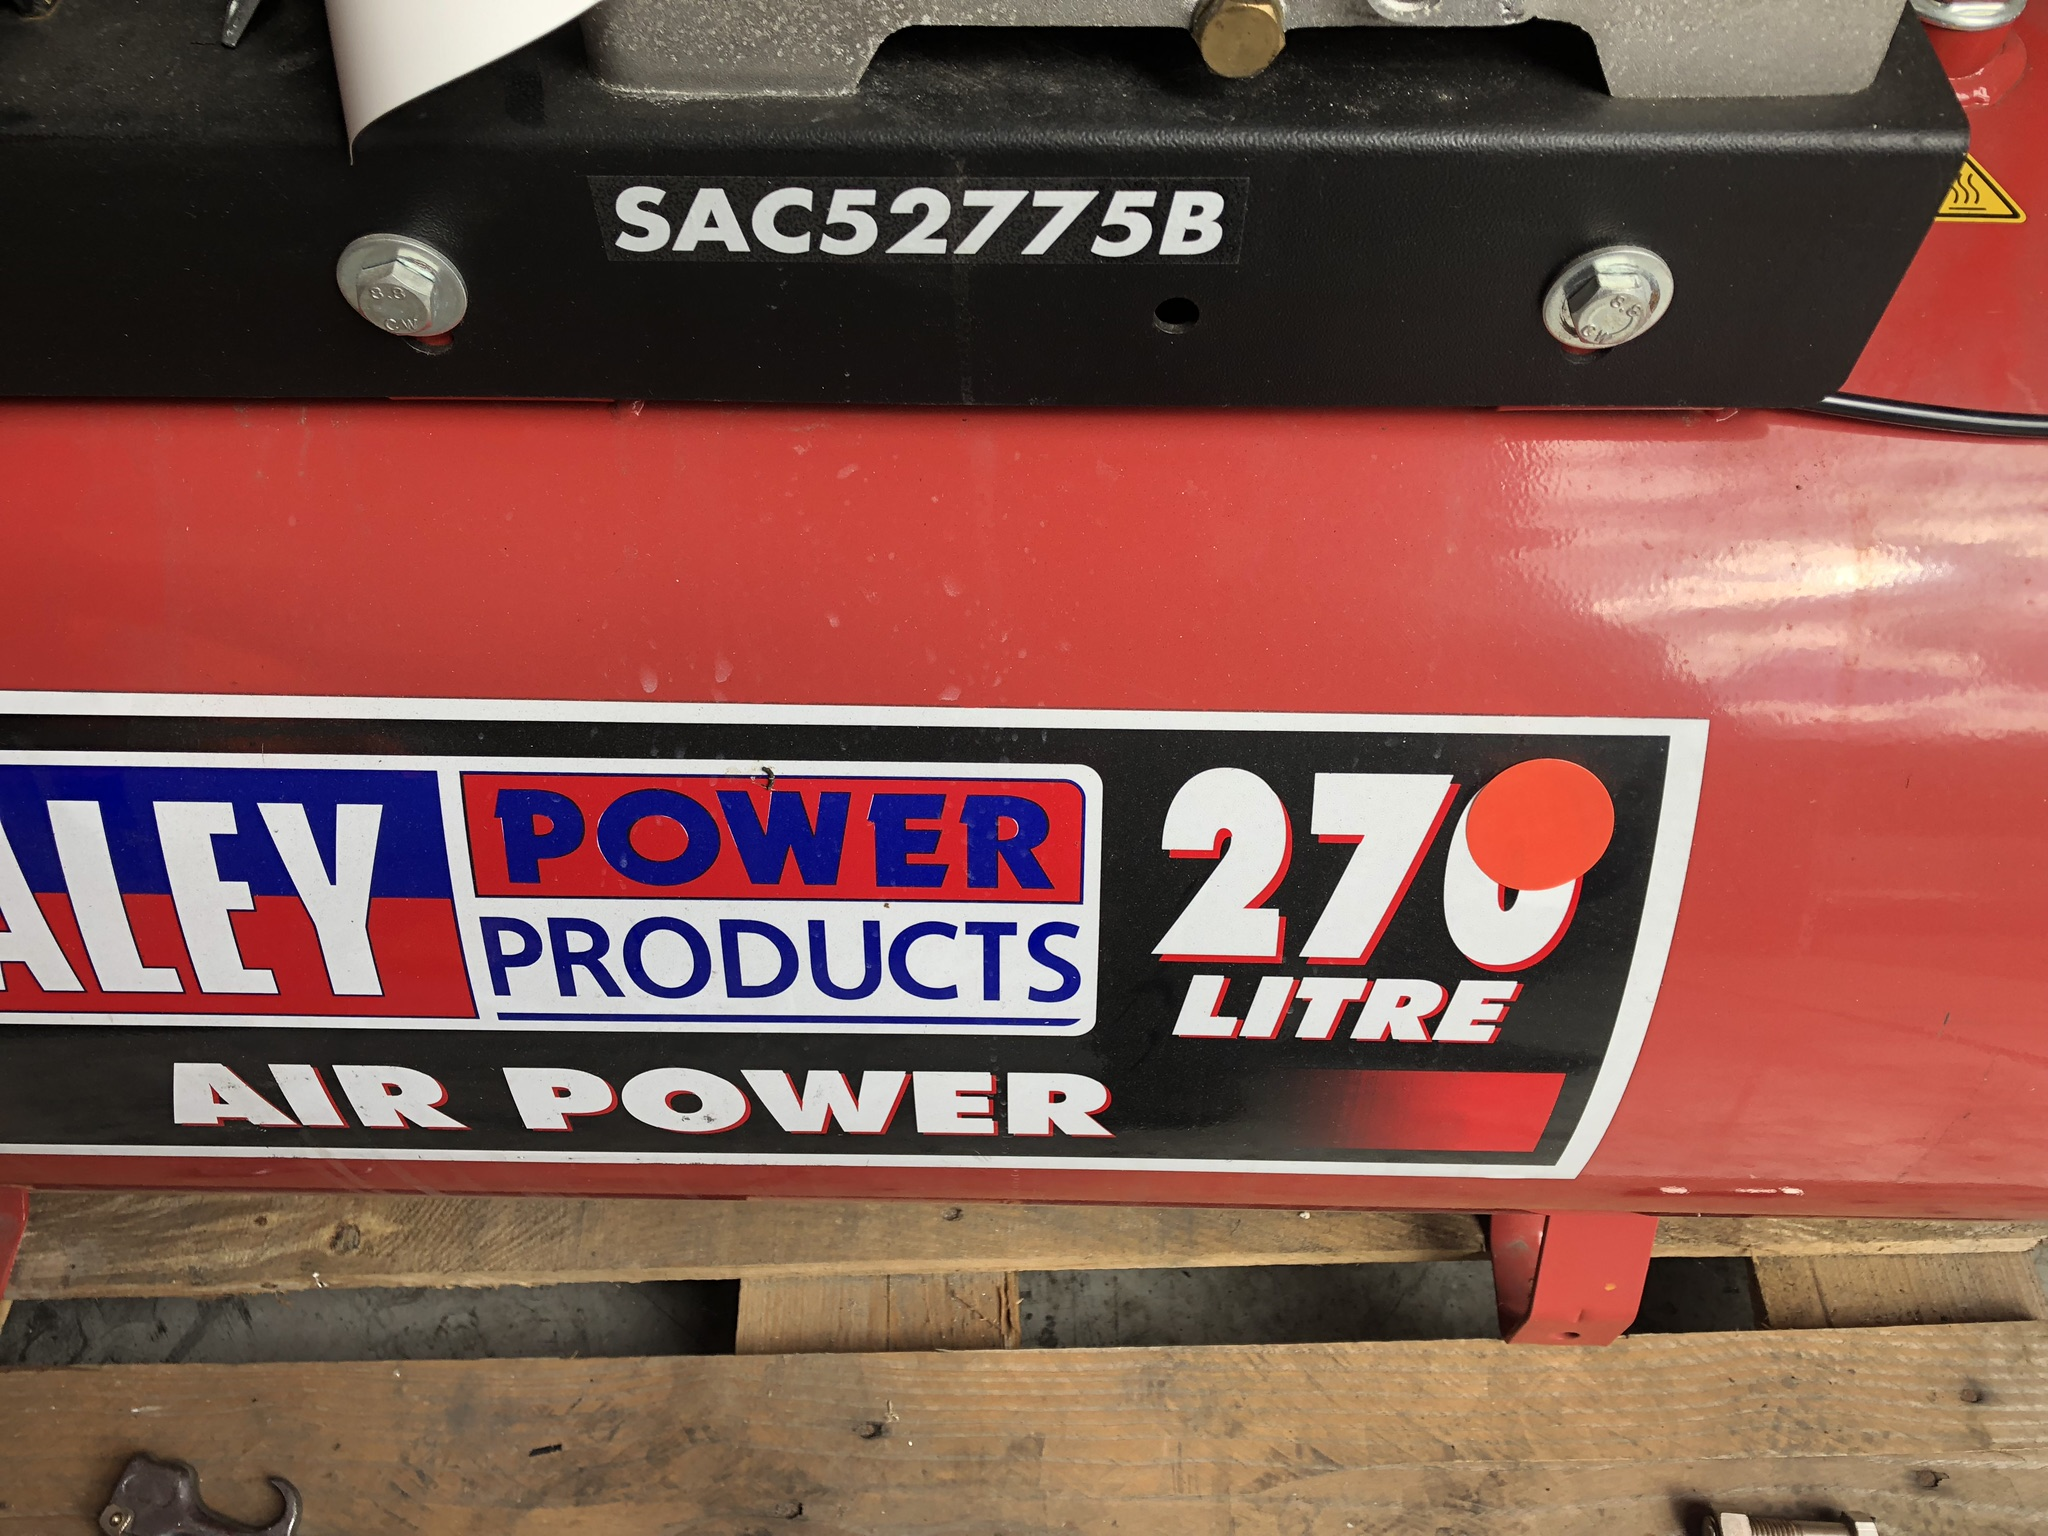 Sealey 270L Receiver Mounted Air Compressor, serial no. 221404956, year of manufacture 2014, approx. - Image 2 of 4